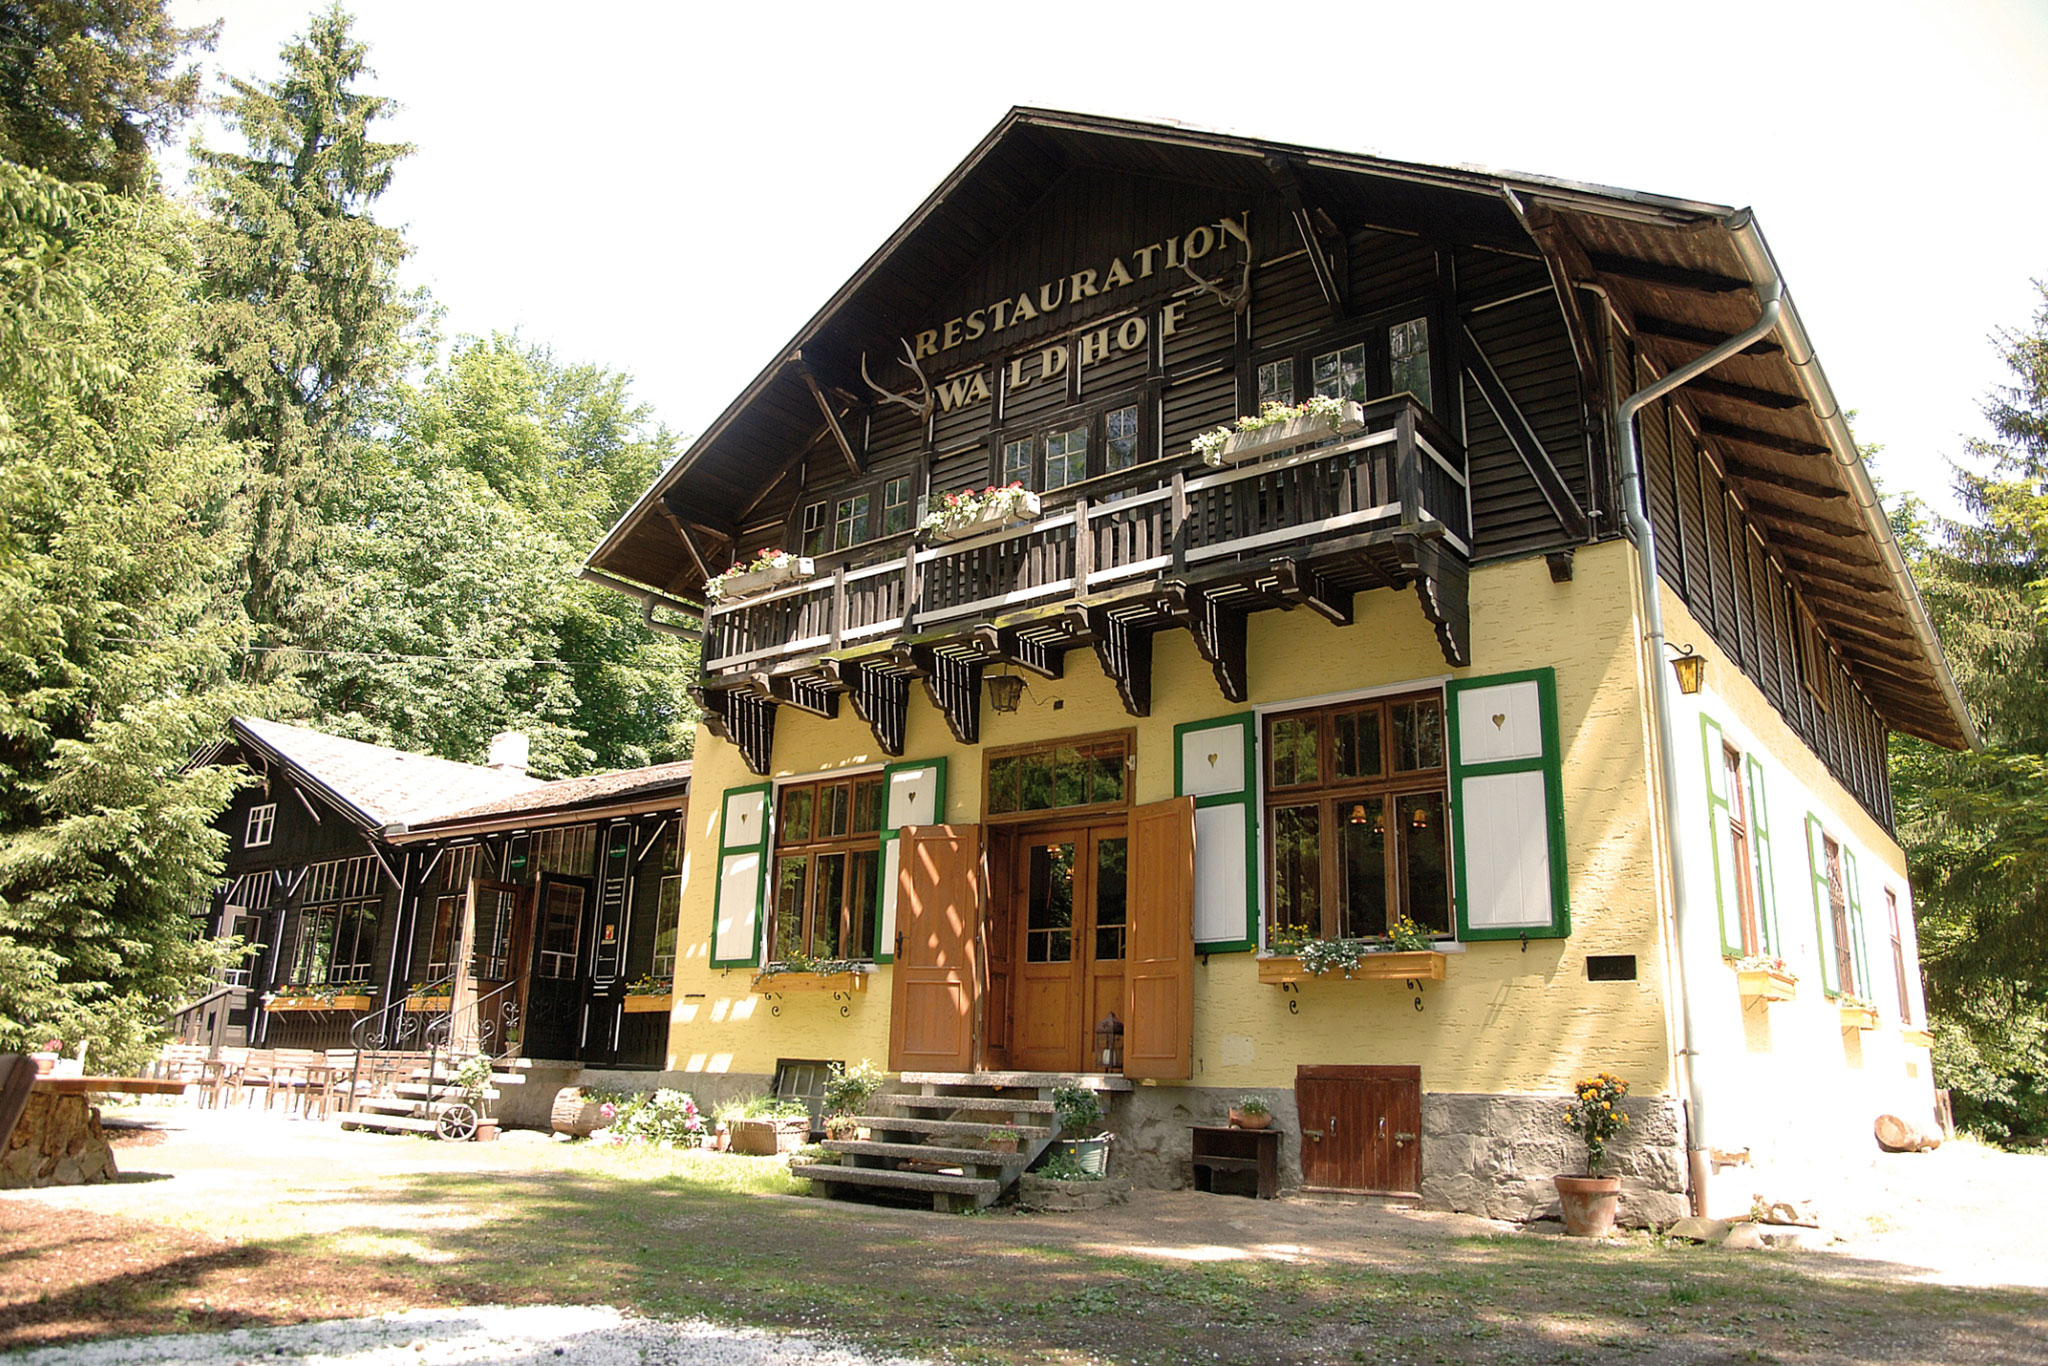 Restaurant Der Waldhof in 3400 Maria Gugging - Falstaff